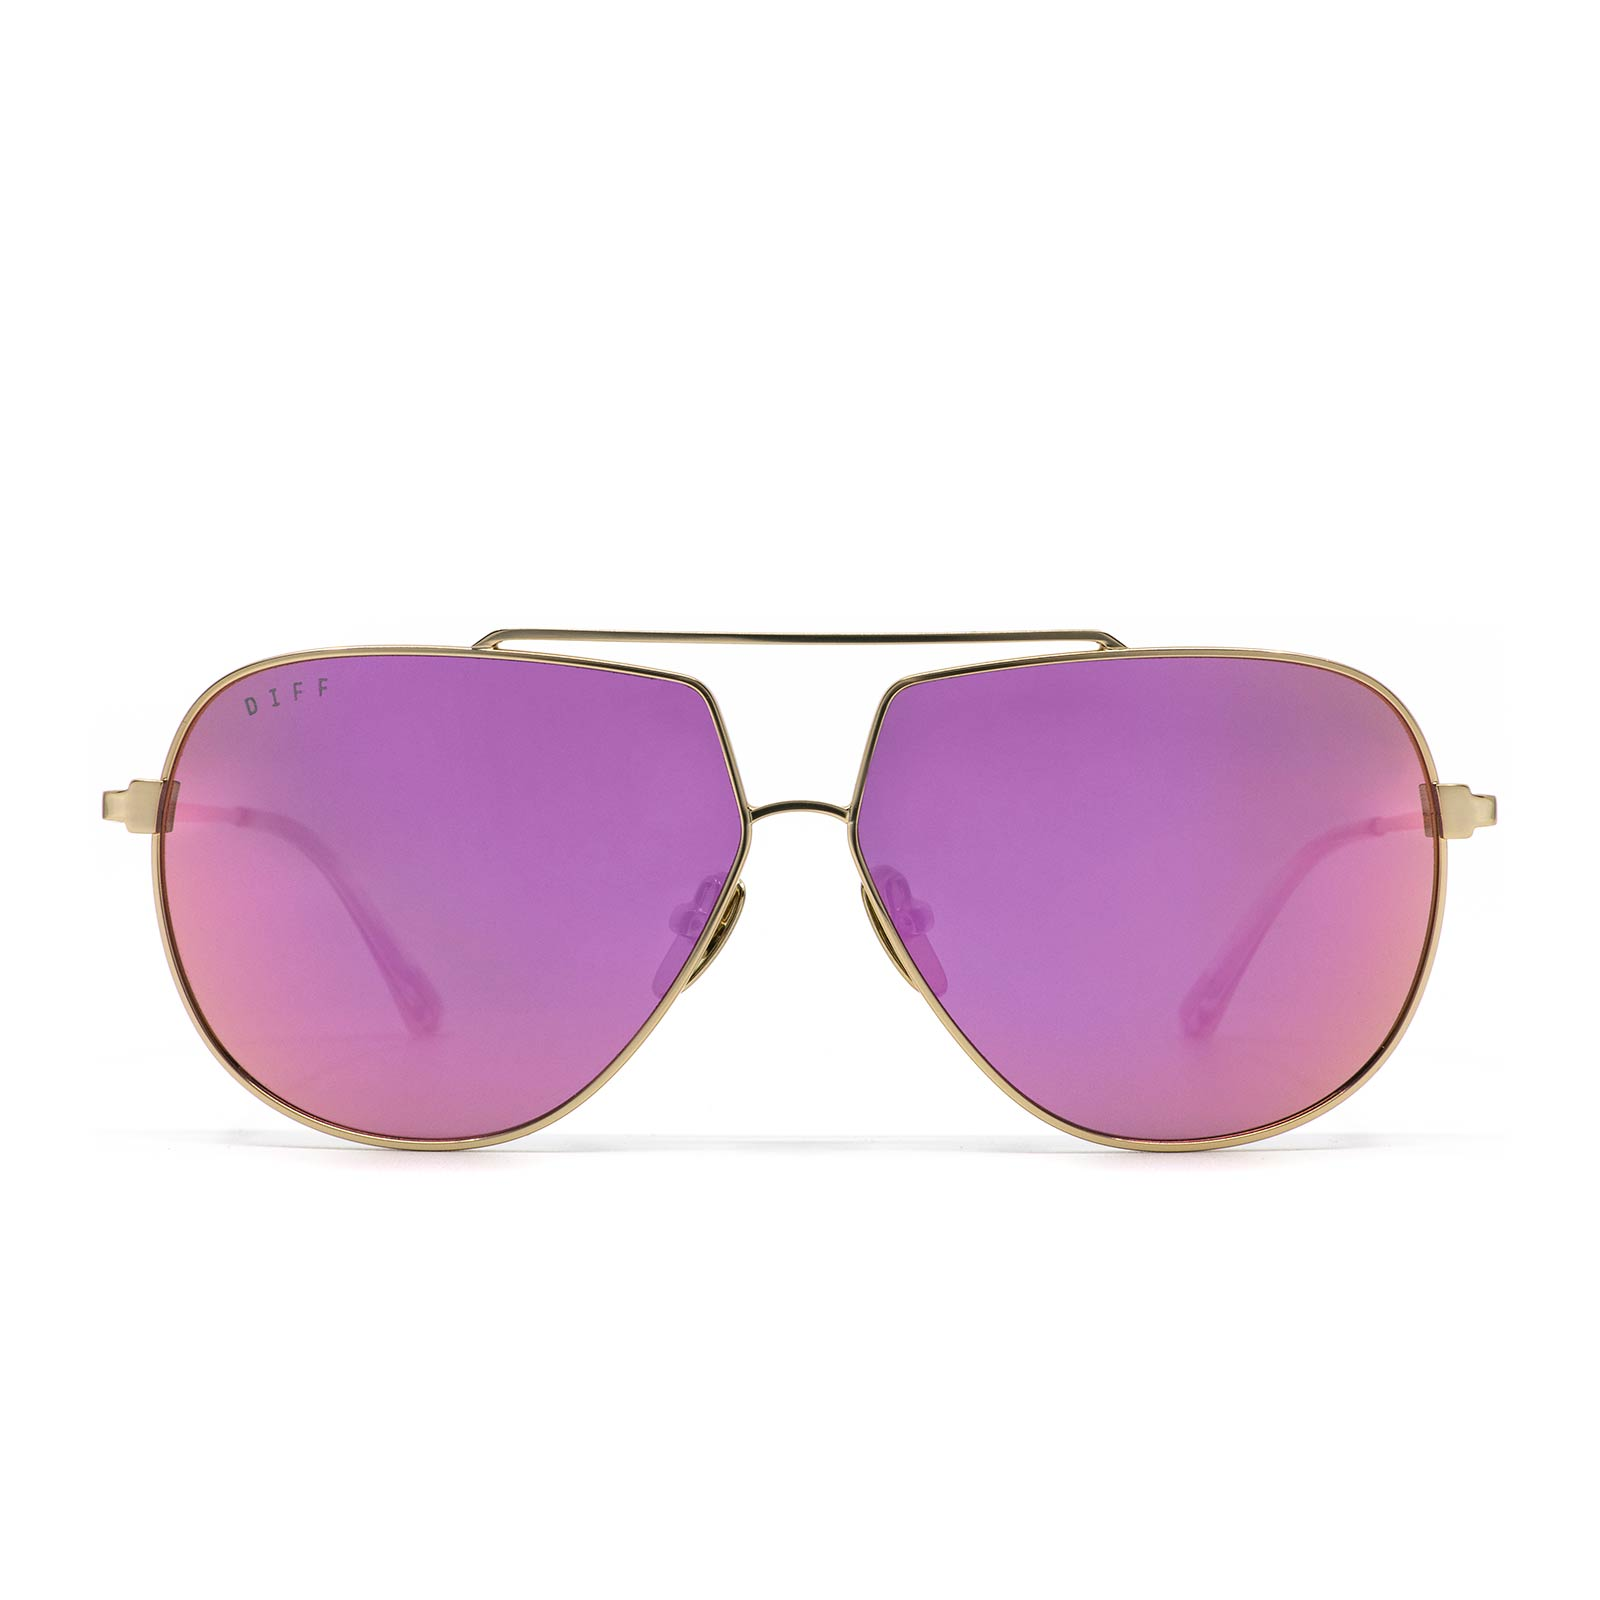 Denver sunglasses with champagne frame and pink mirror lens- front view